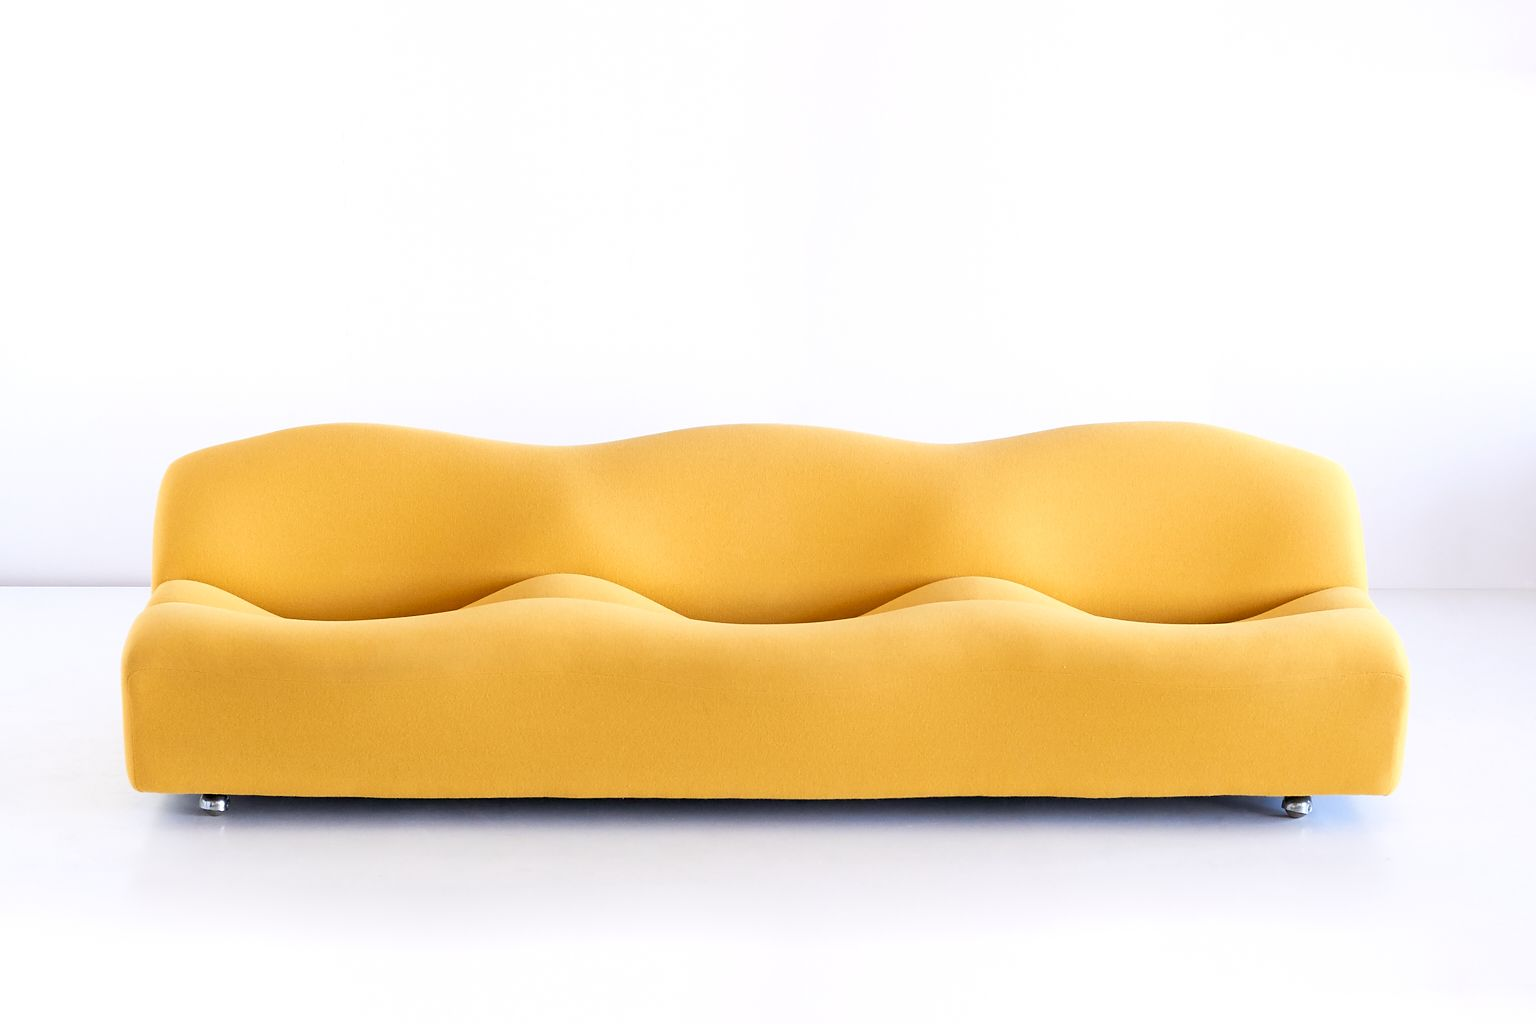 Pierre Paulin Sofa Three Seater Abcd Sofa By Pierre Paulin For Artifort 1960s The Exceptional